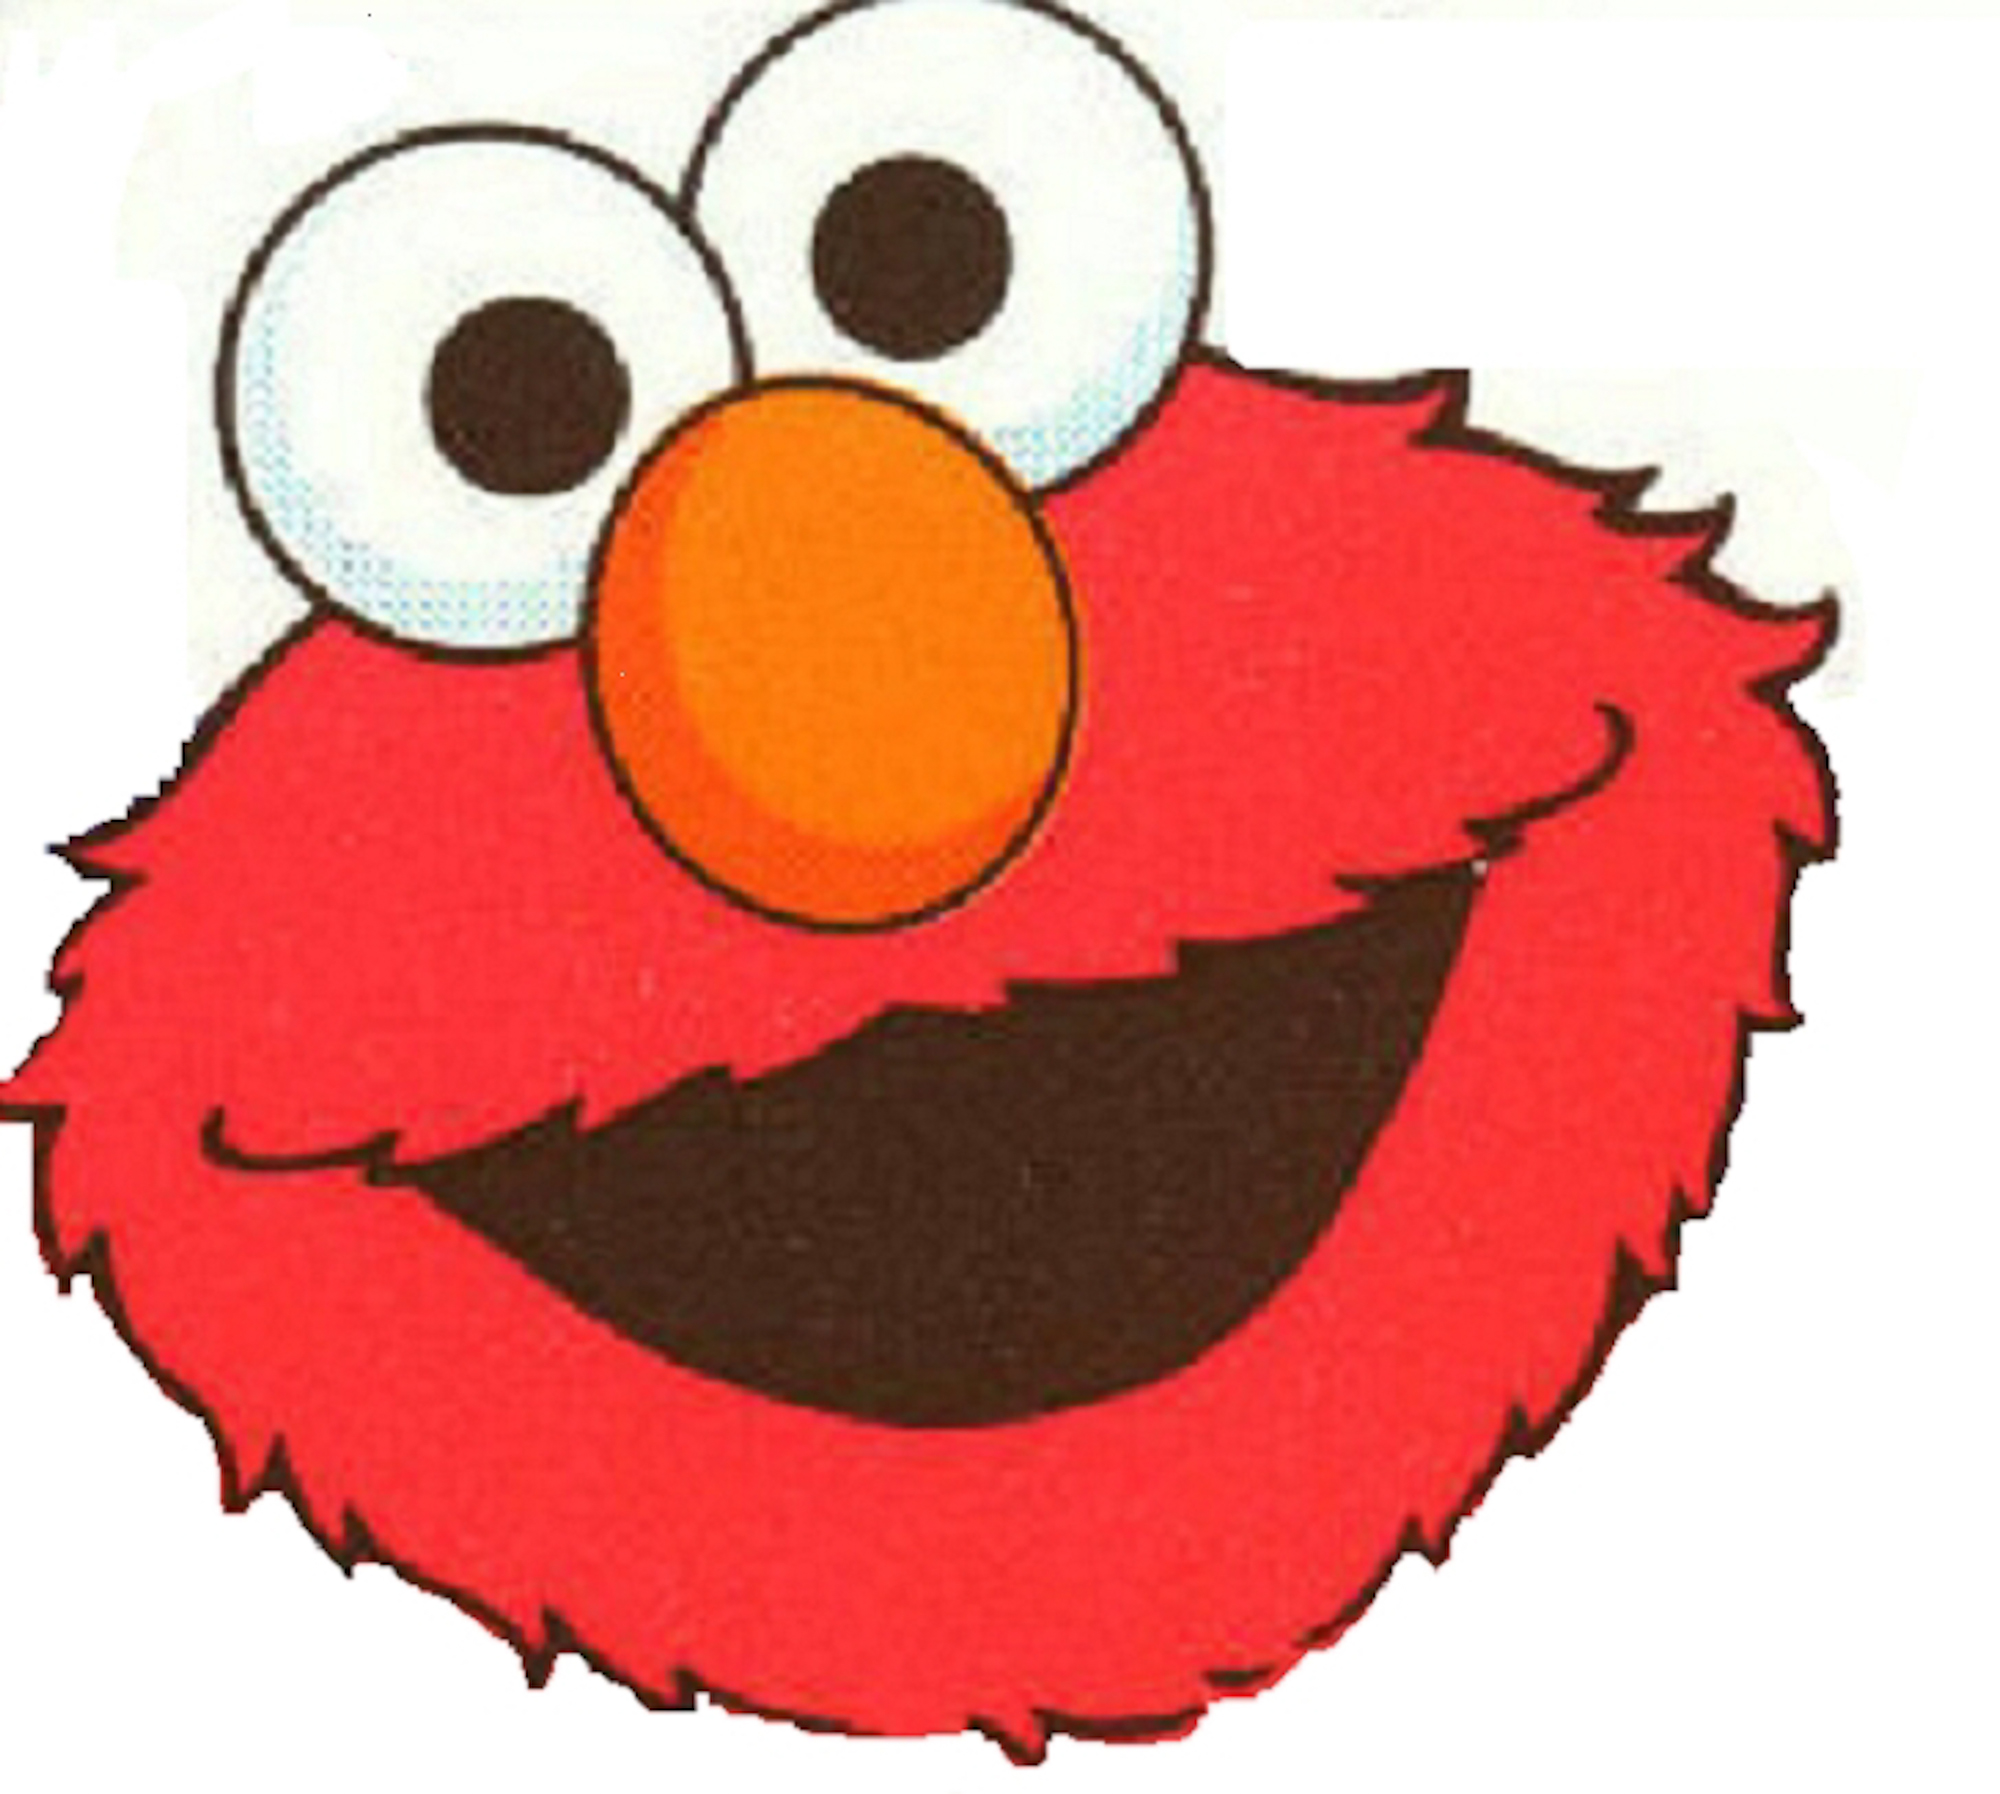 2000x1794 Baby Sesame Street Characters Clip Art Elmo Big Bird Cookie